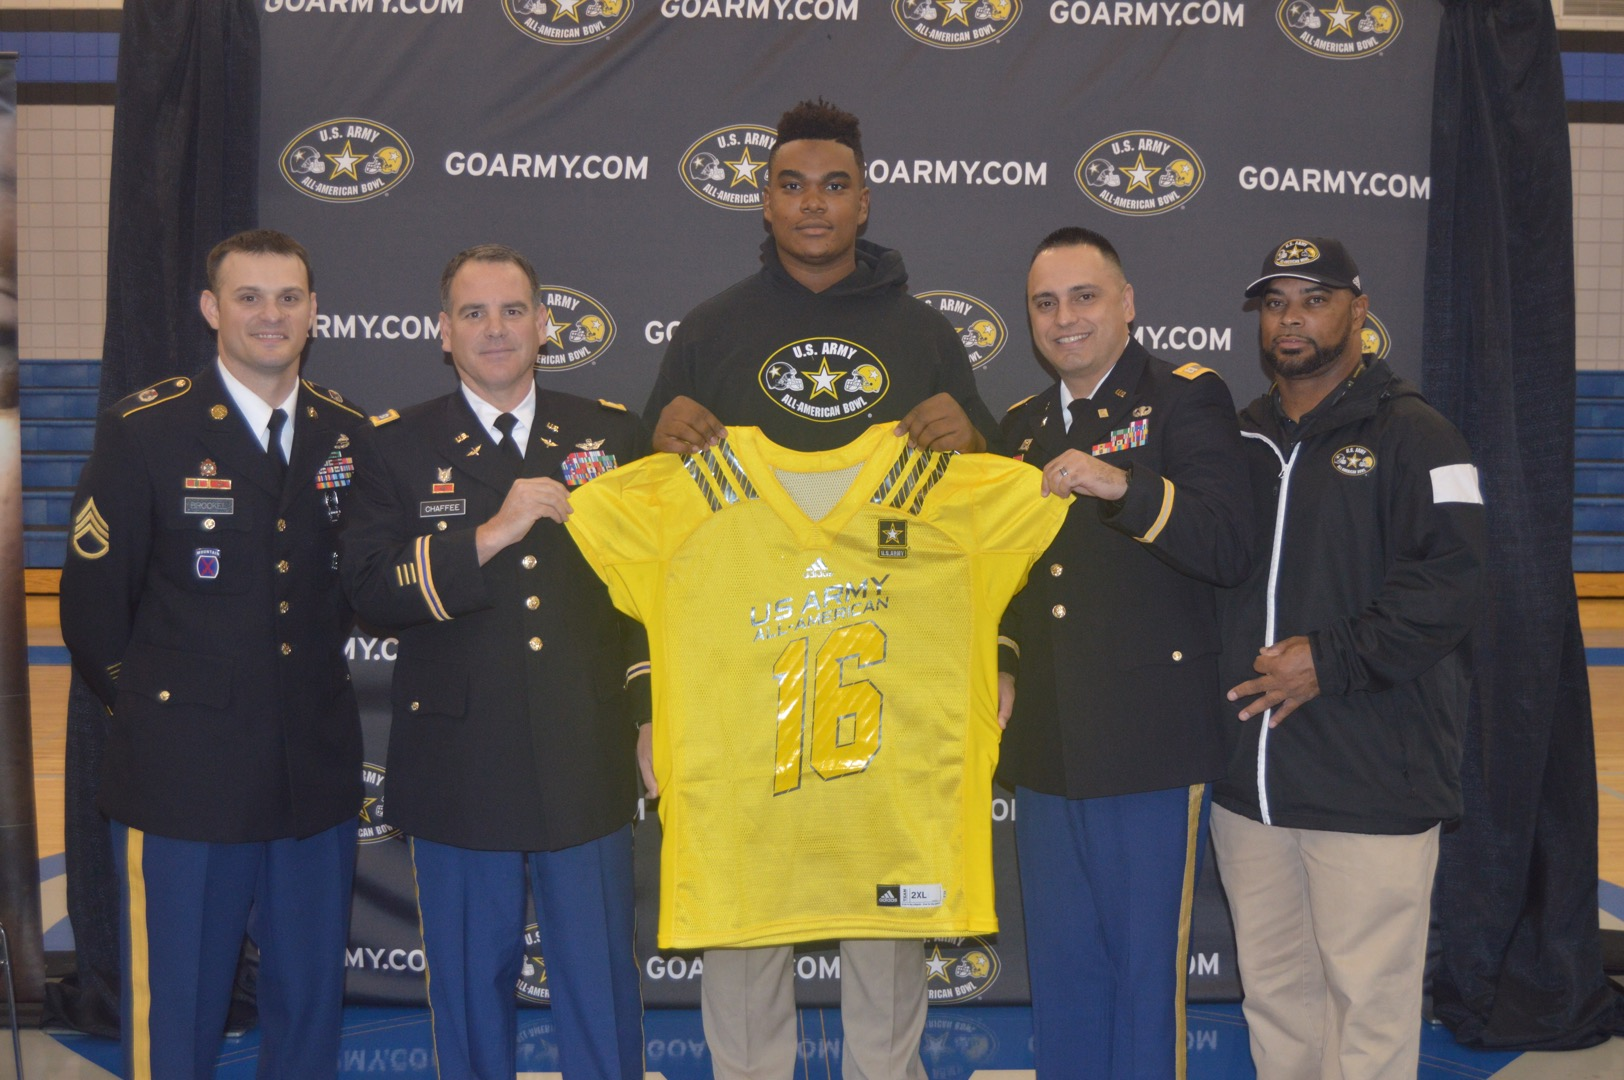 Jordan Elliott receives his Army All-American jersey from (from left): Staff Sergeant Zebedee Brockel, Lieutenant Colonel Chaffee and Captain Rodriguez (Photo: U.S. Army All-American Game)